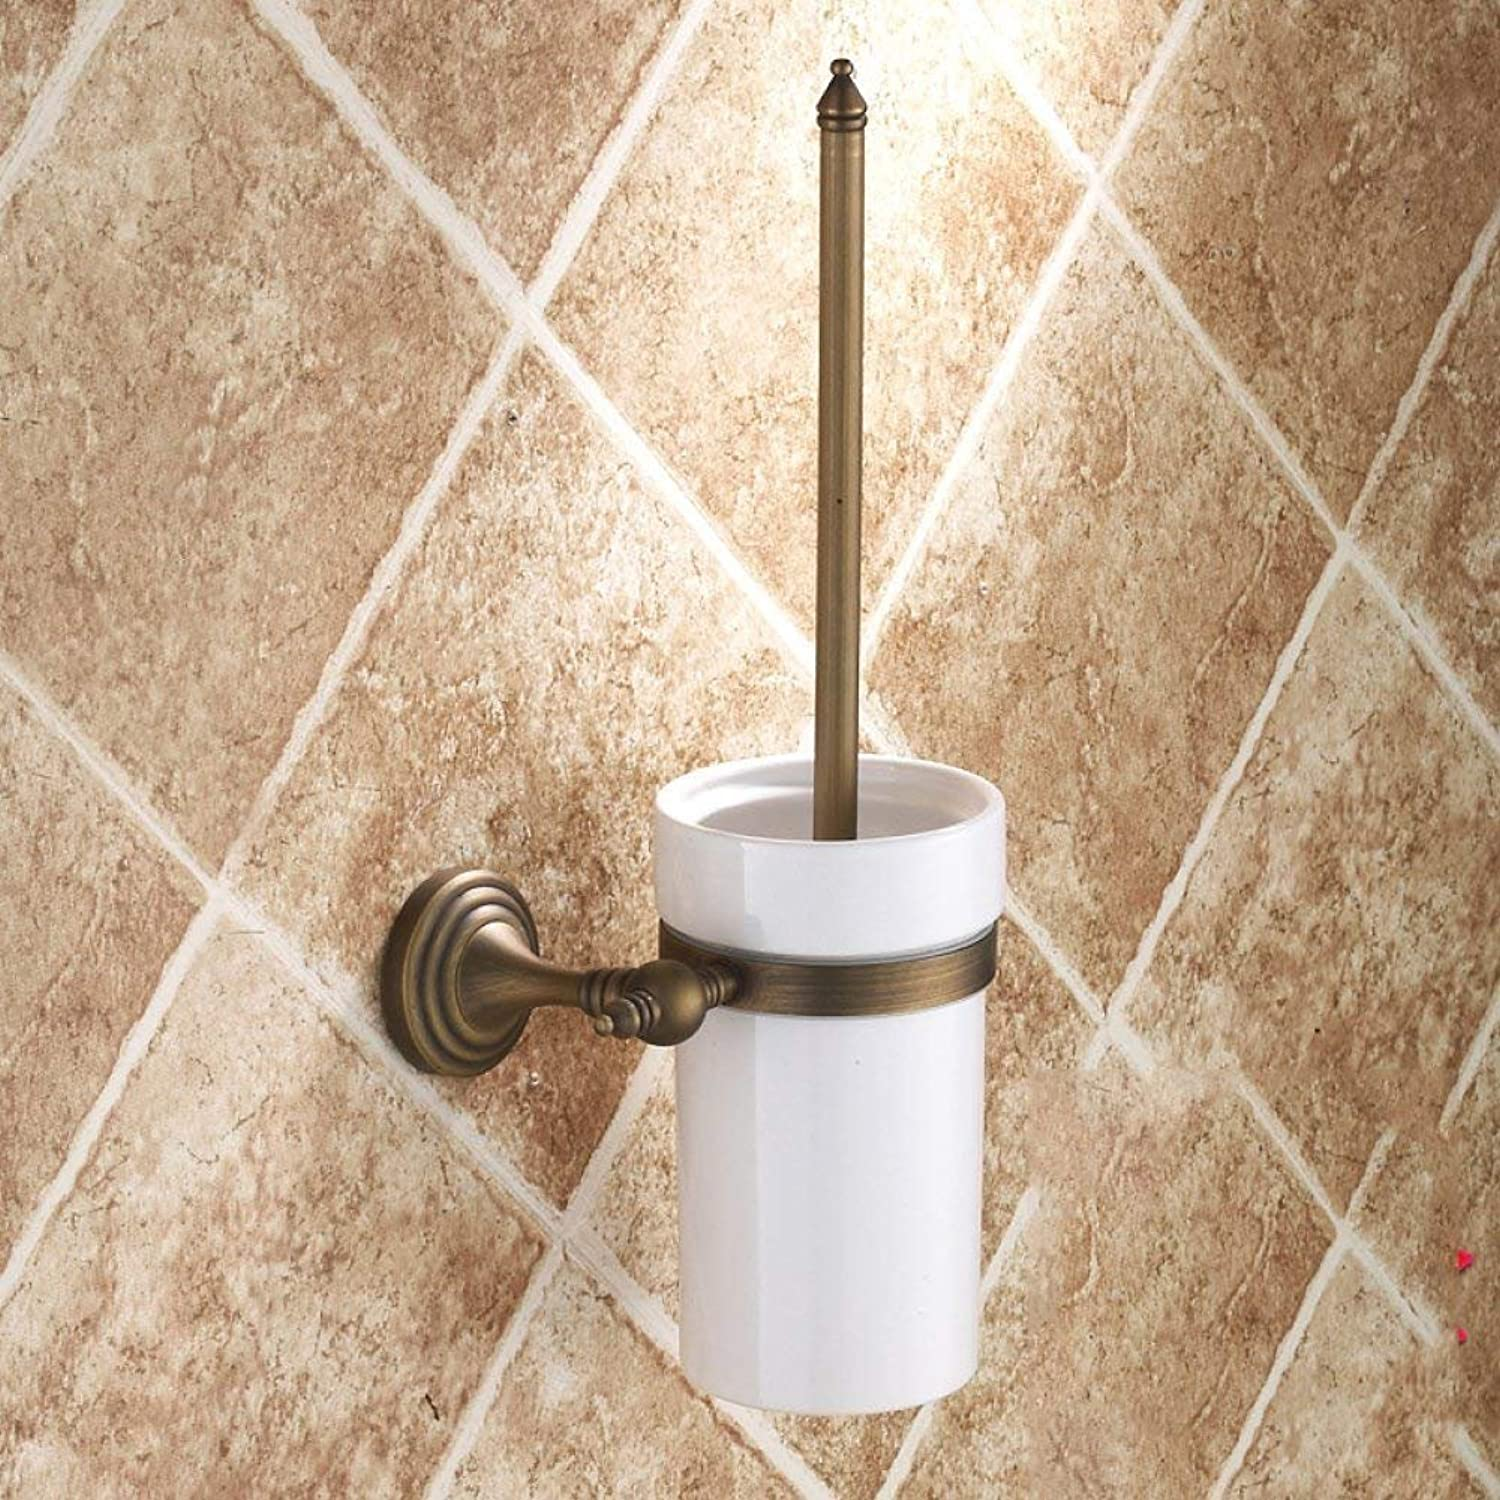 Accessories for Bathroom Toilet Antiques Cup All Toilets of The Bronze Brush Holder Toilet Brush Toilet Brush Bathroom European Retro